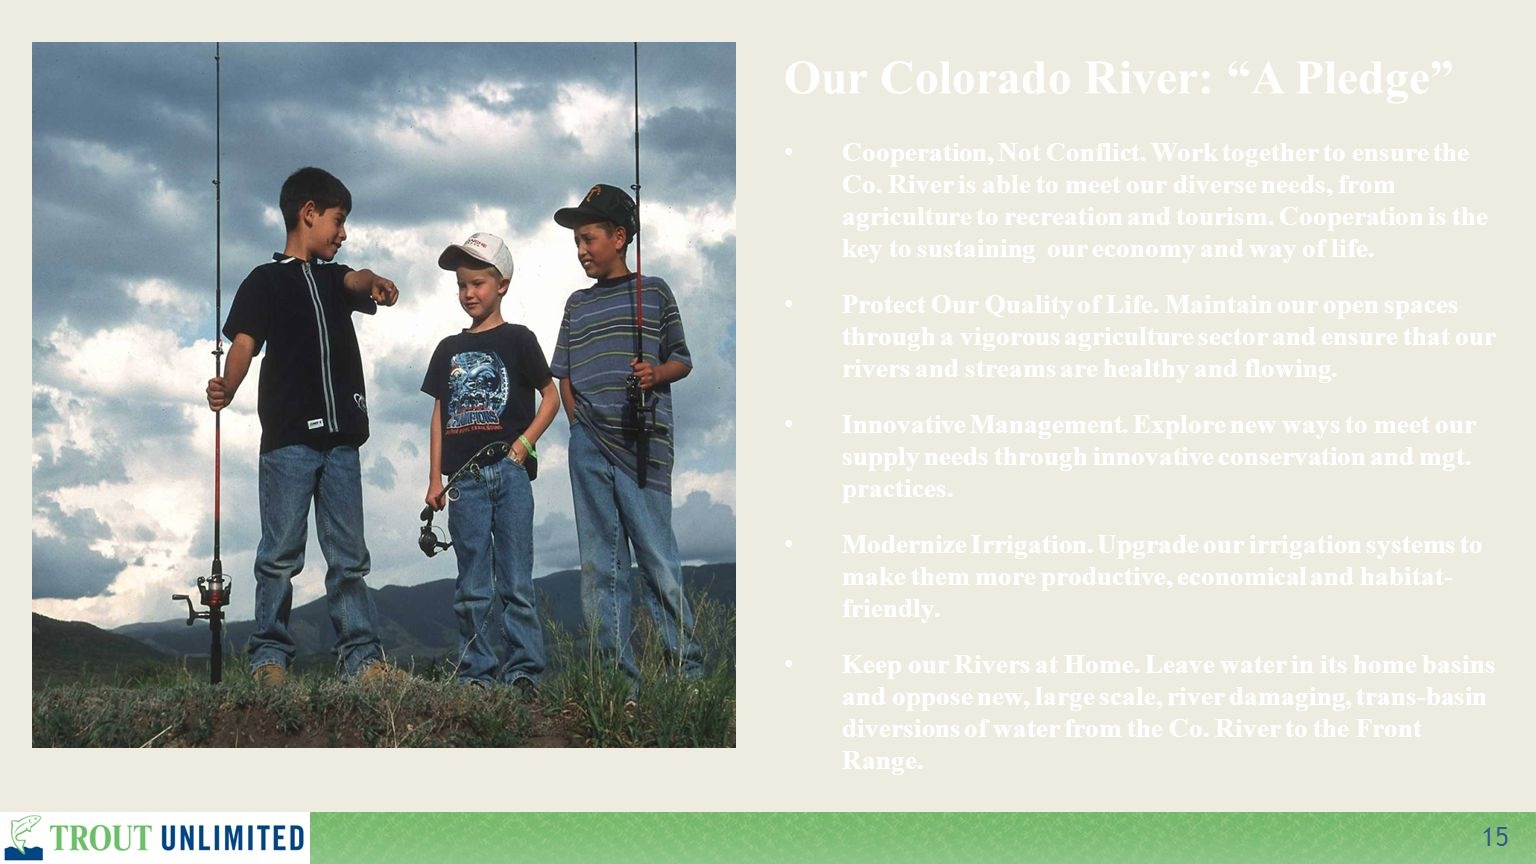 15 Our Colorado River: A Pledge Cooperation, Not Conflict.